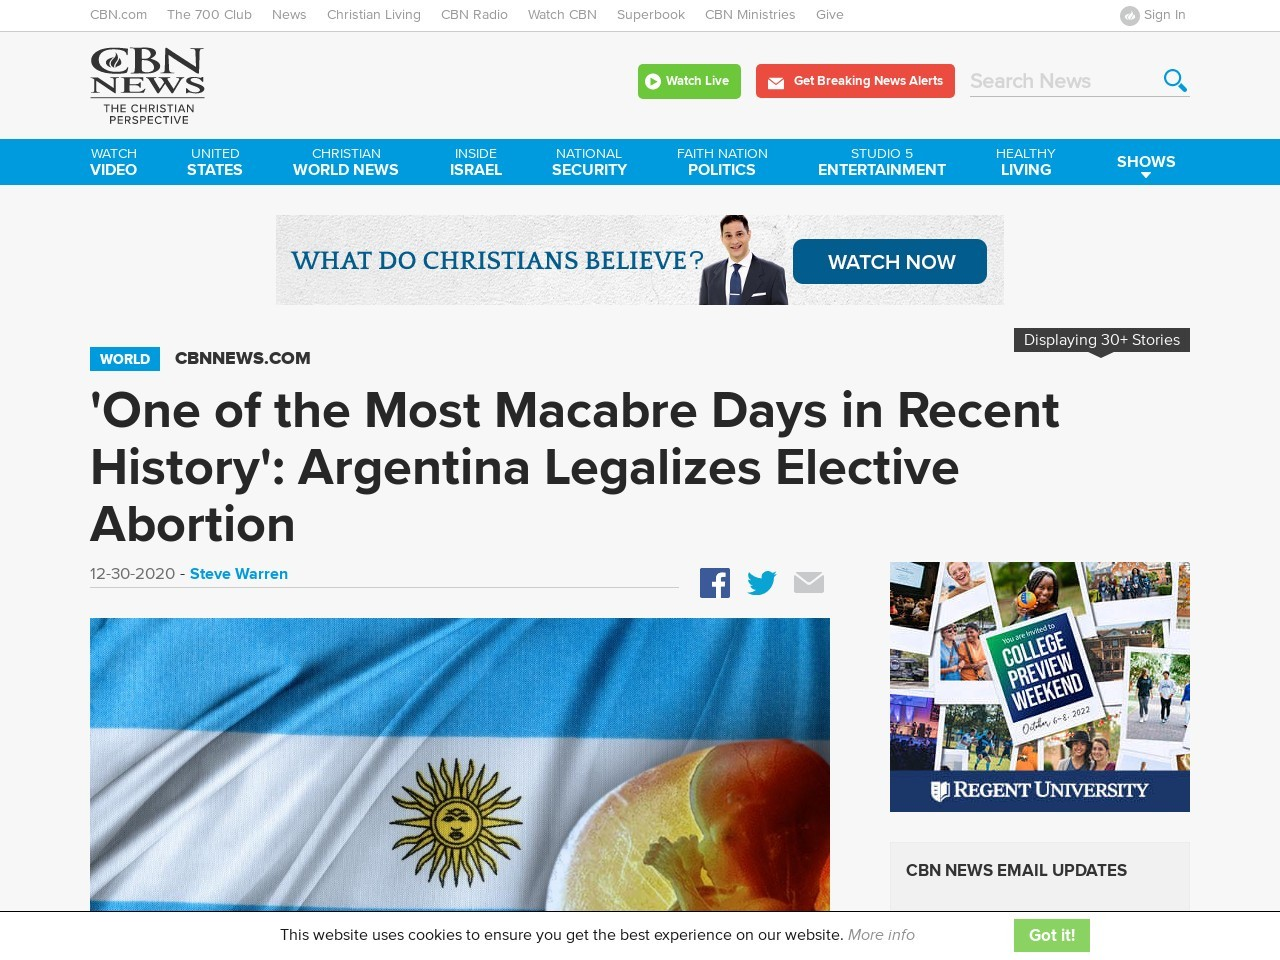 'One of the Most Macabre Days in Recent History': Argentina Legalizes Elective Abortion